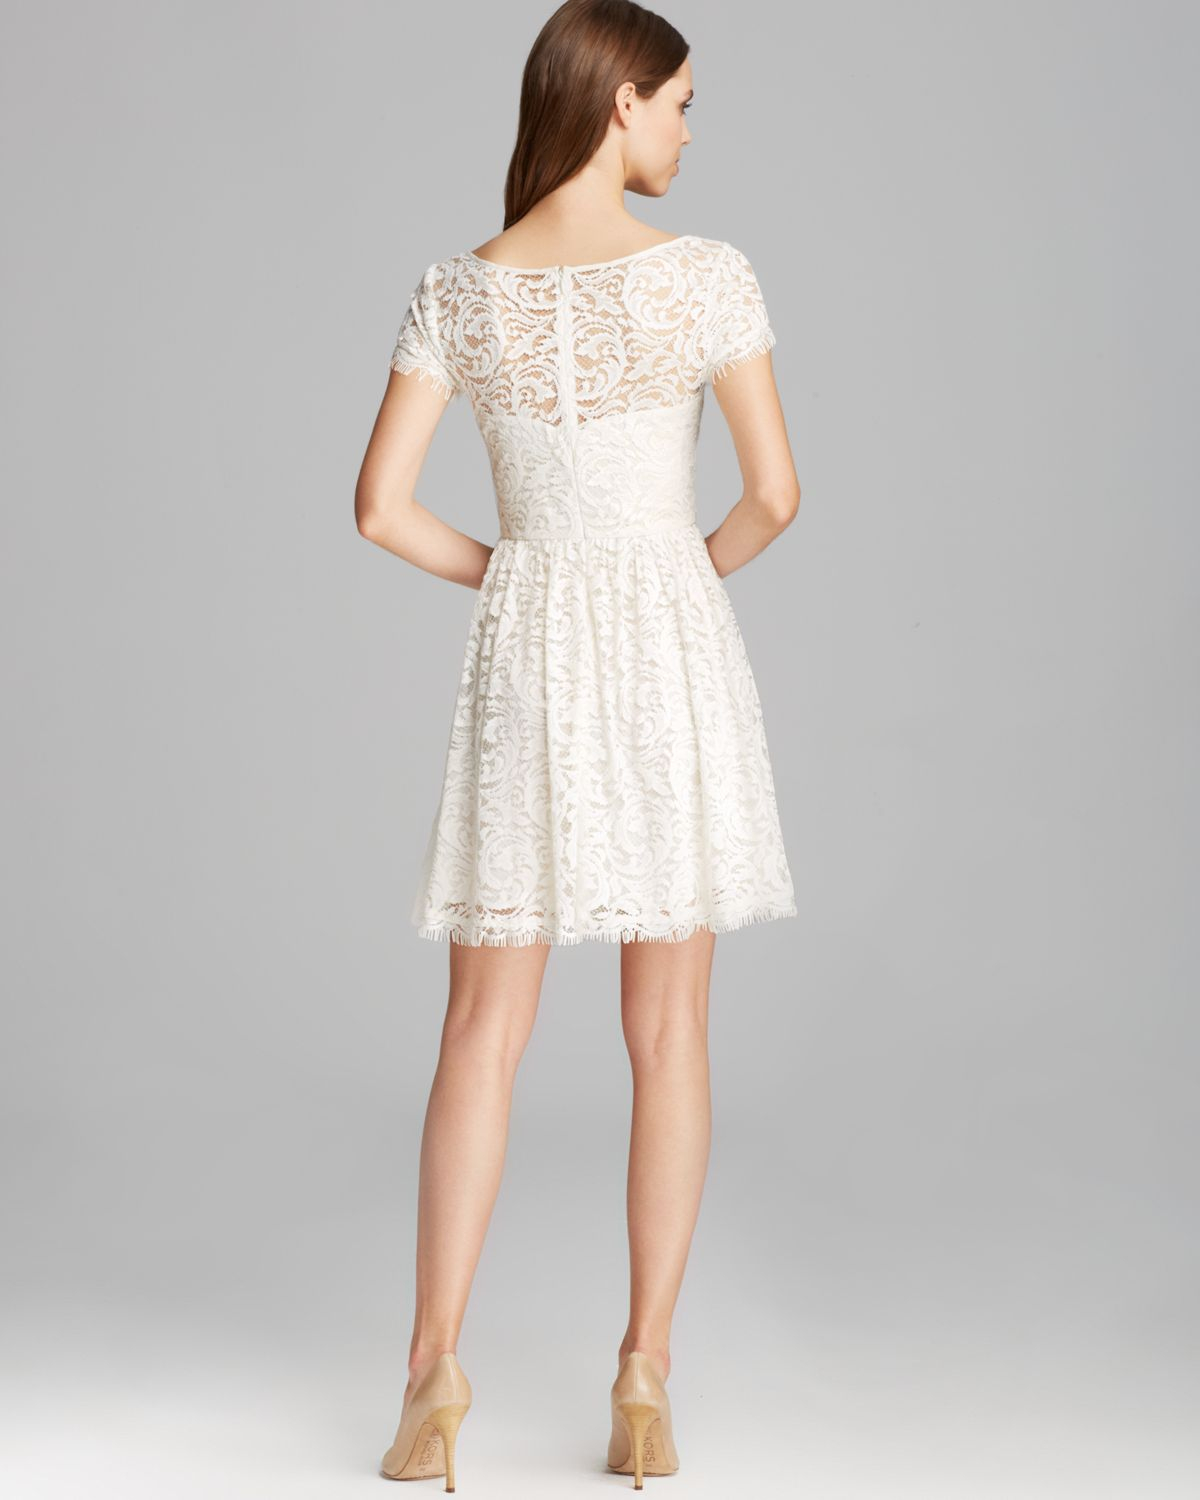 Nicole Miller Dress Swirling Vines Short Sleeve Lace Fit